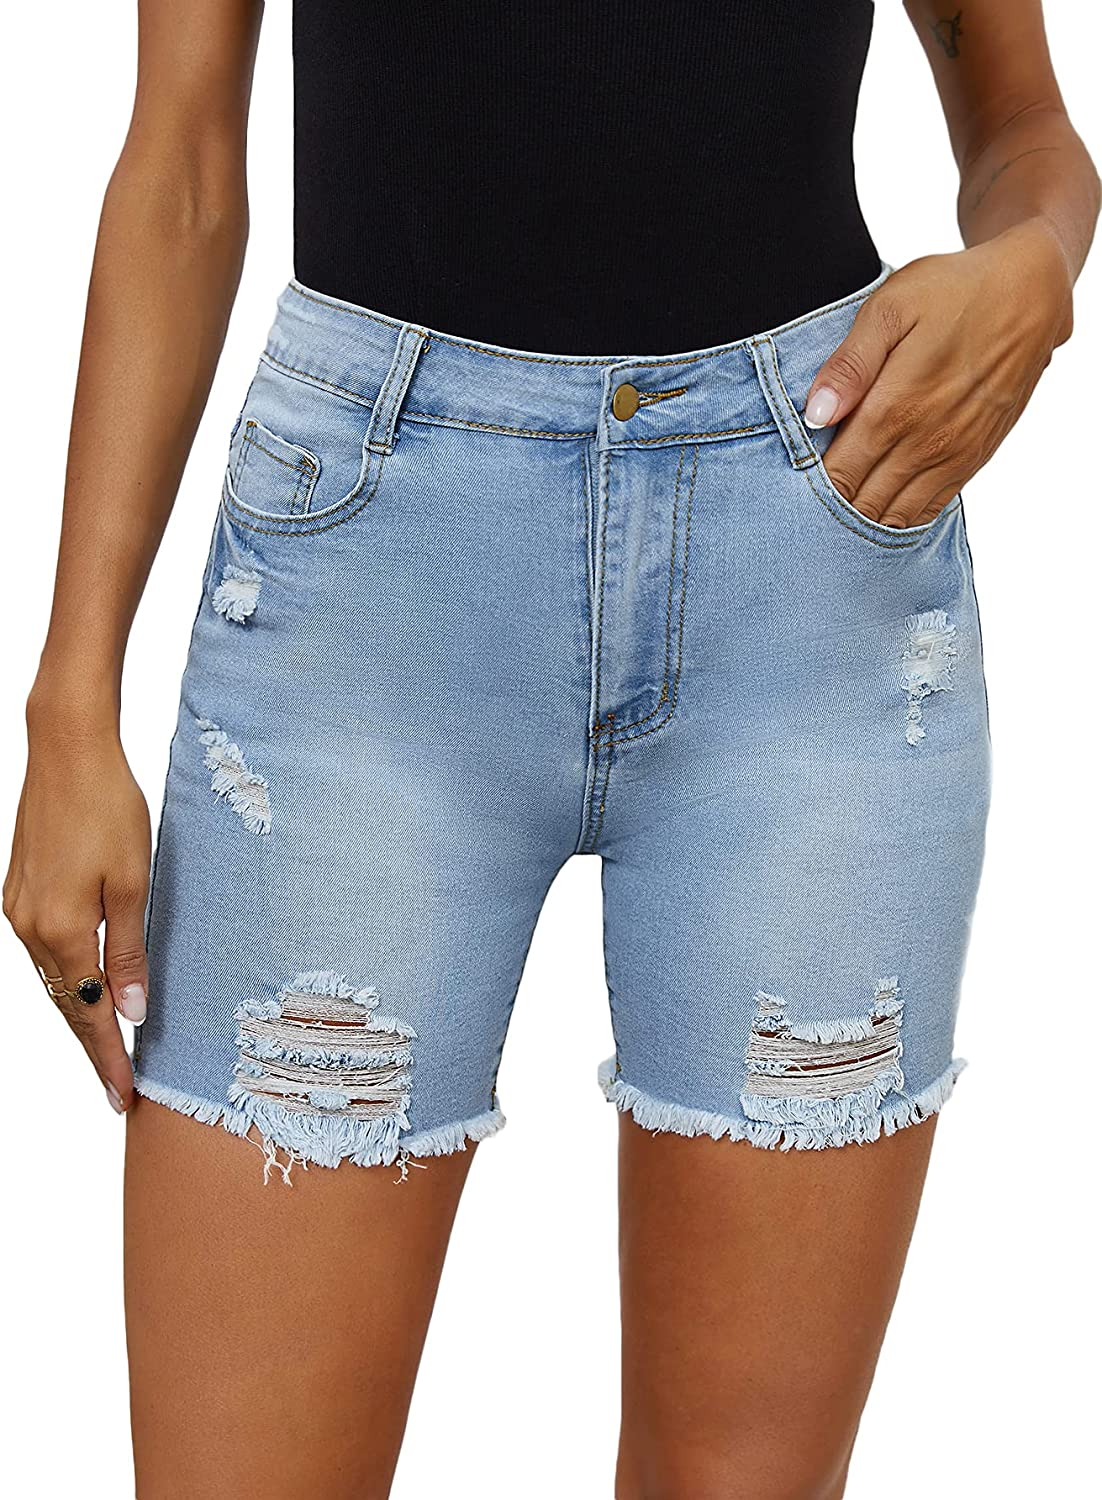 Floerns Women's Casual Denim Shorts Frayed Raw Hem Ripped Stretchy Jeans Shorts Light Blue S